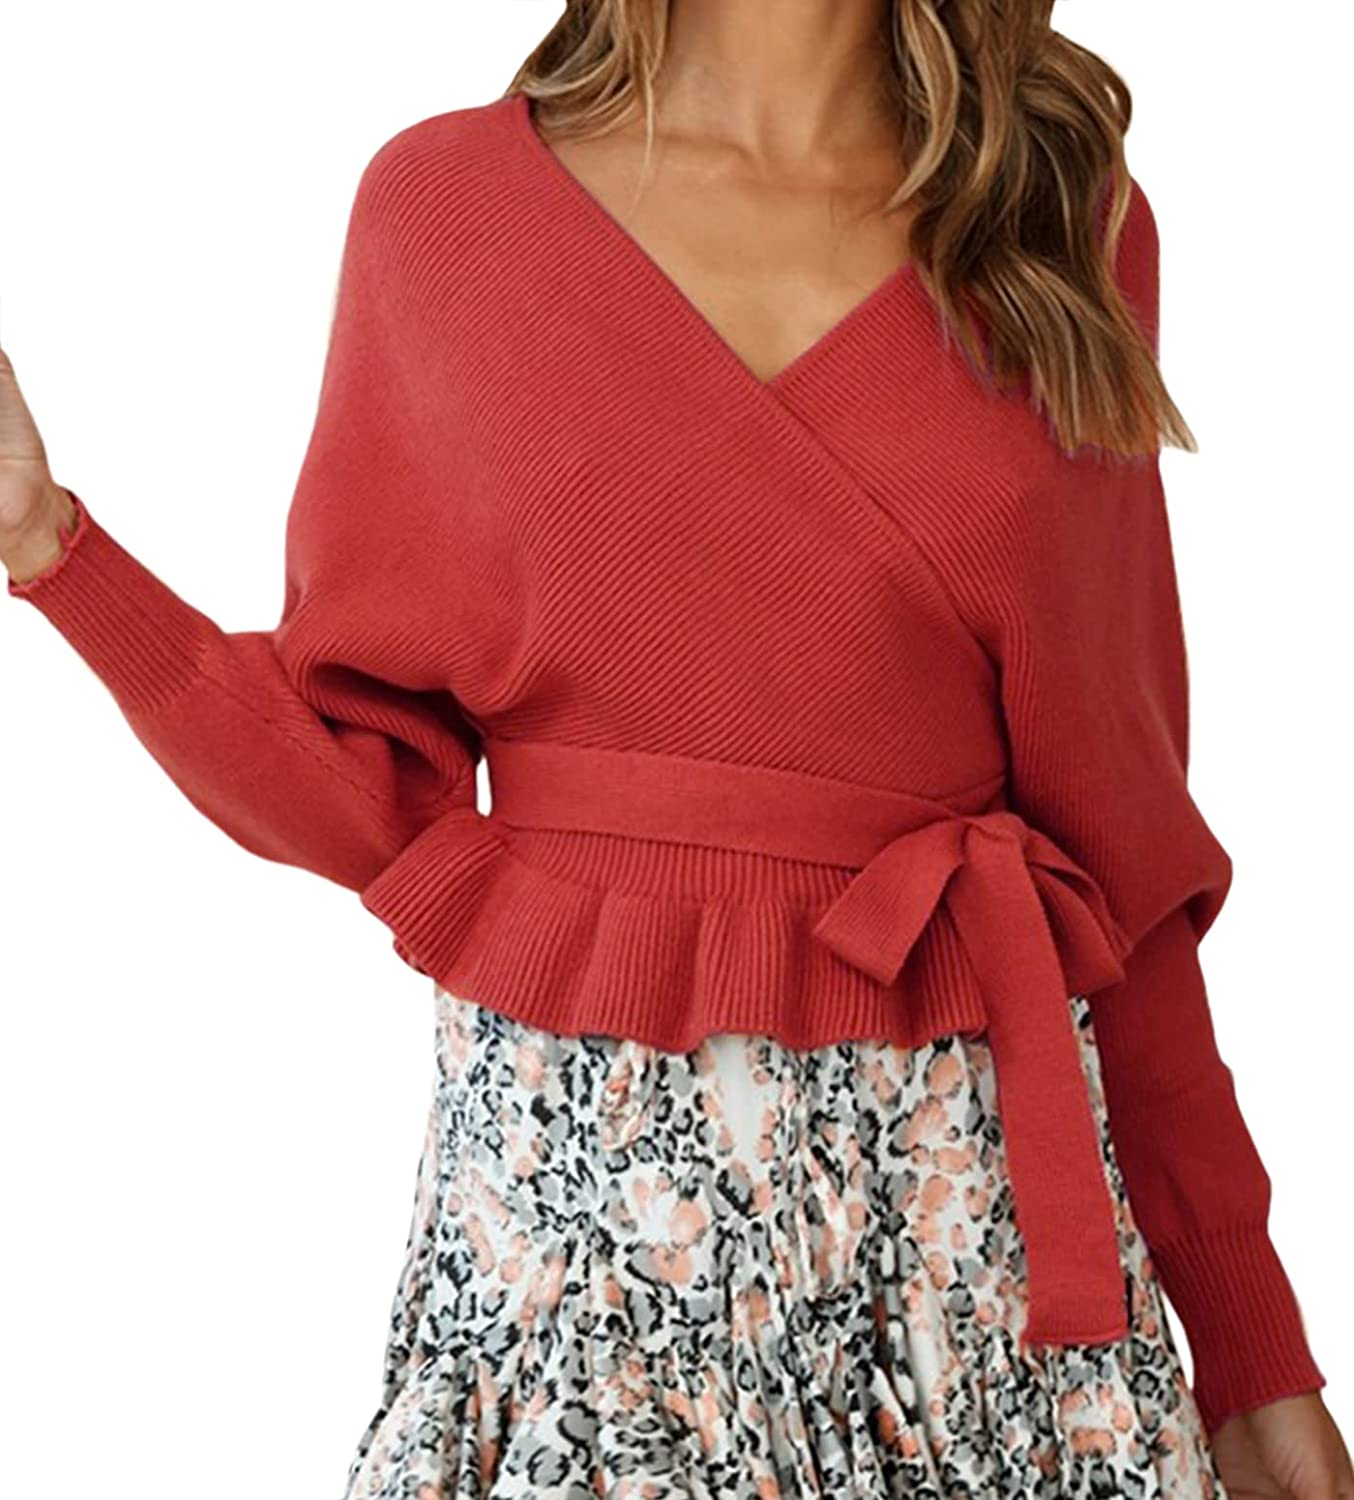 Mansy Womens Sexy V Neck Backless Long Belted Sleeve Batwing Ruf Max Year-end gift 82% OFF